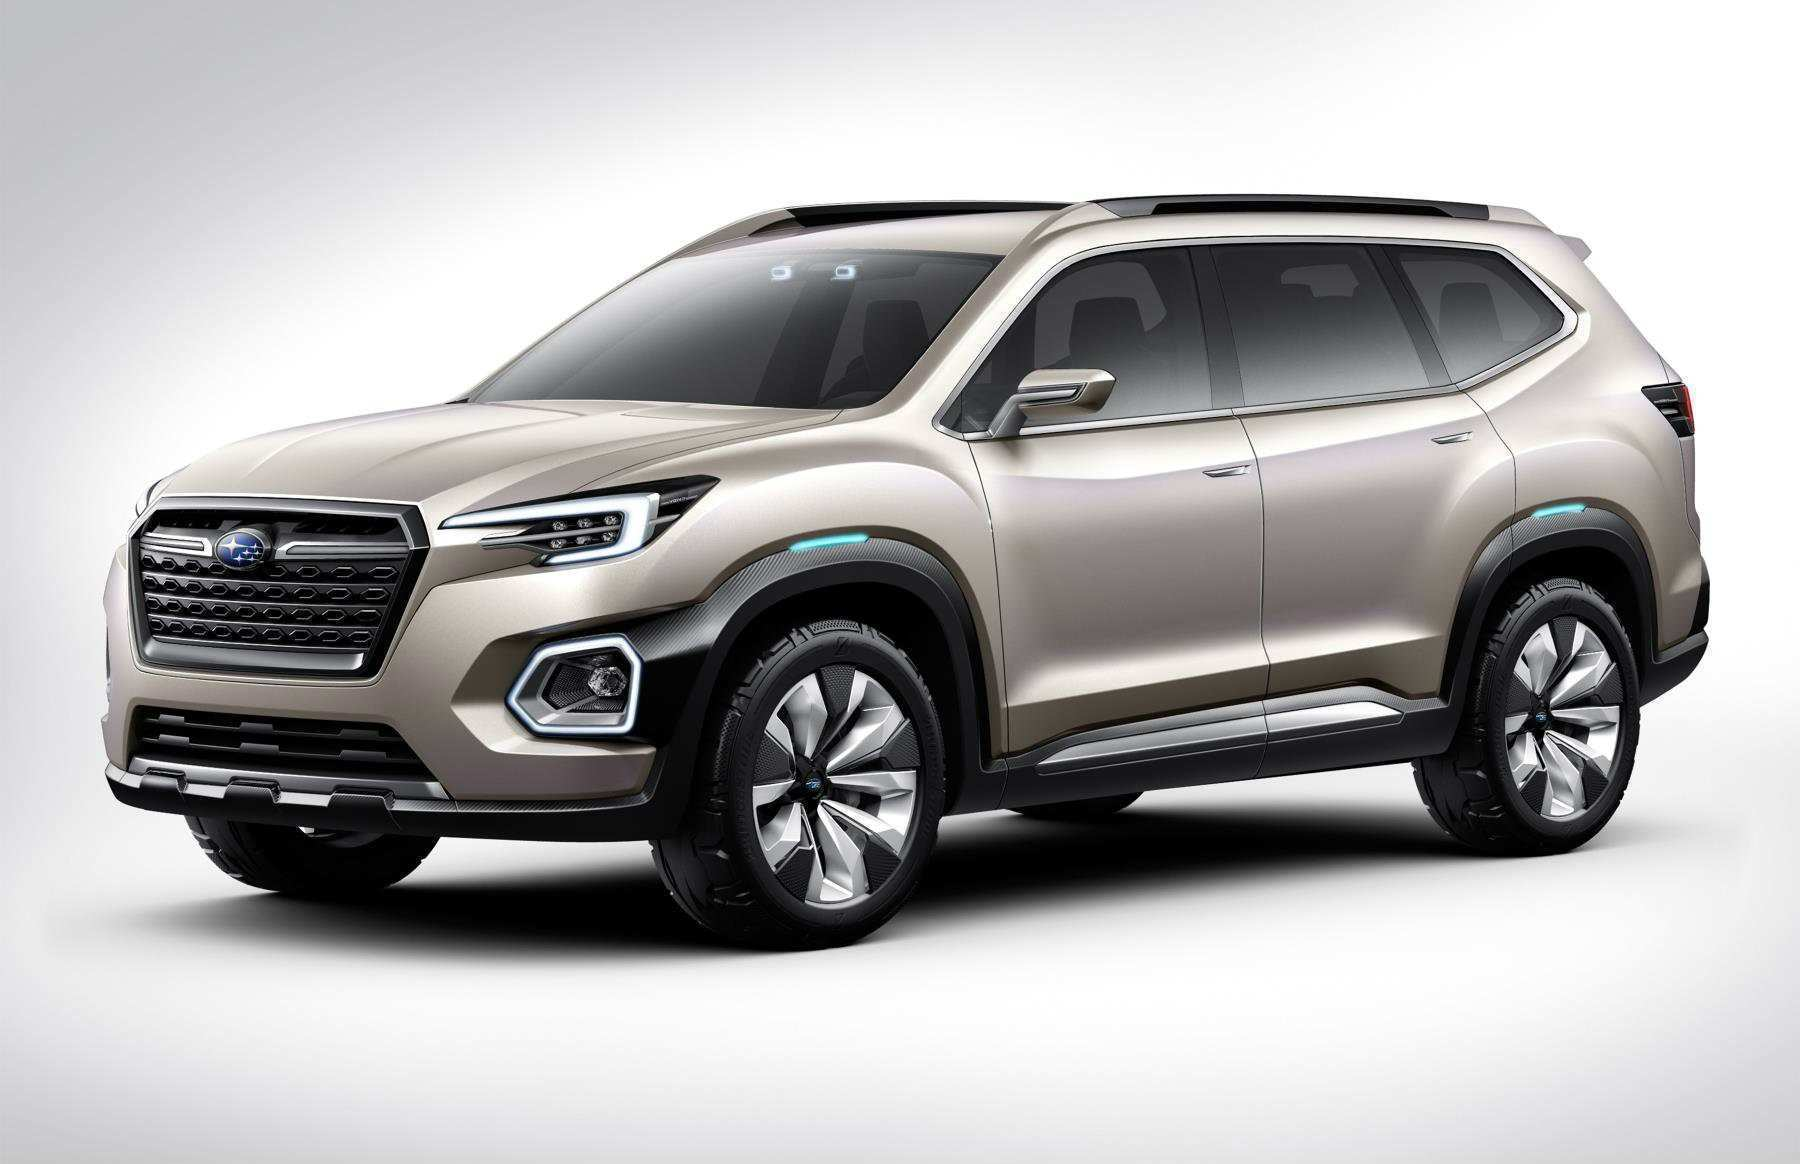 40 New Subaru Tribeca 2019 New Review